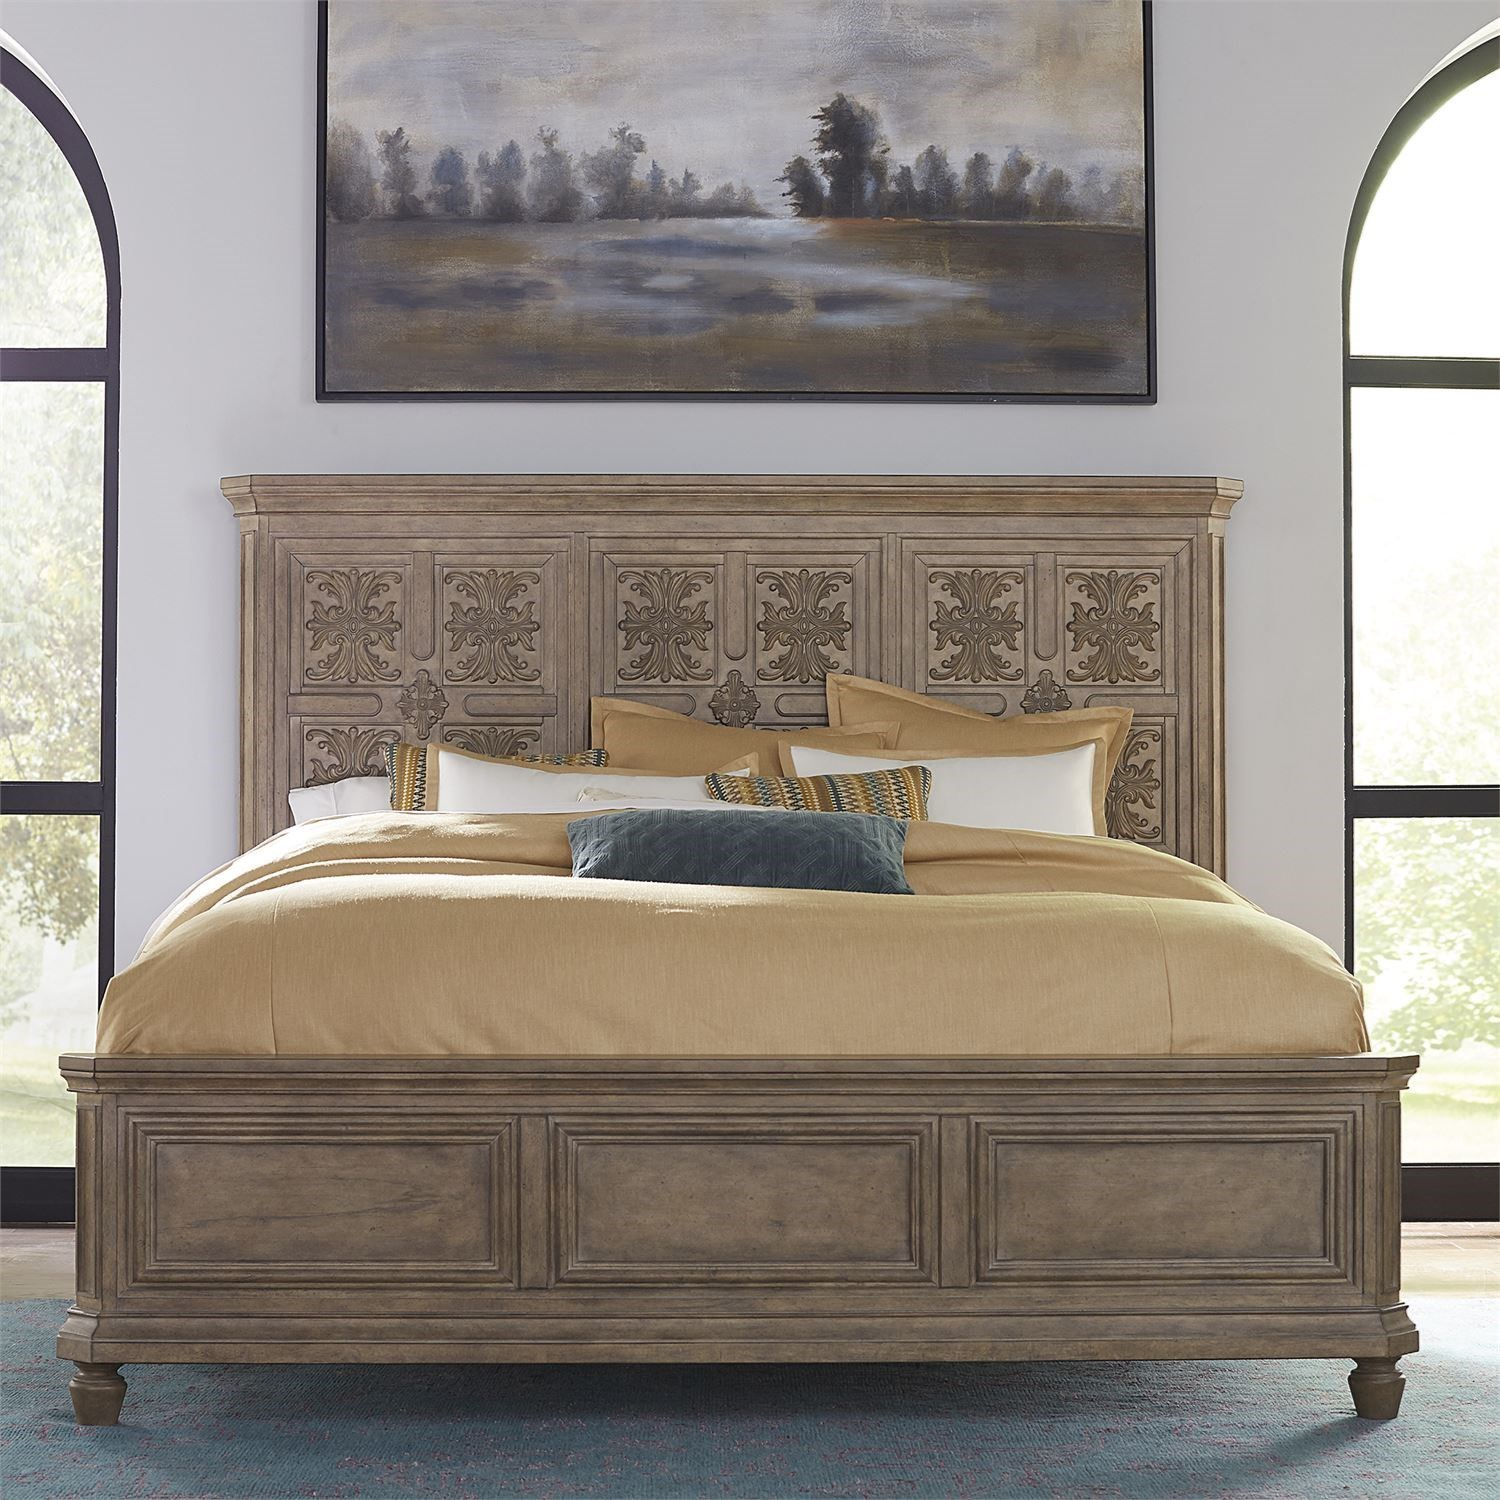 The Laurels Decorative California King Panel Bed by Libby at Walker's Furniture